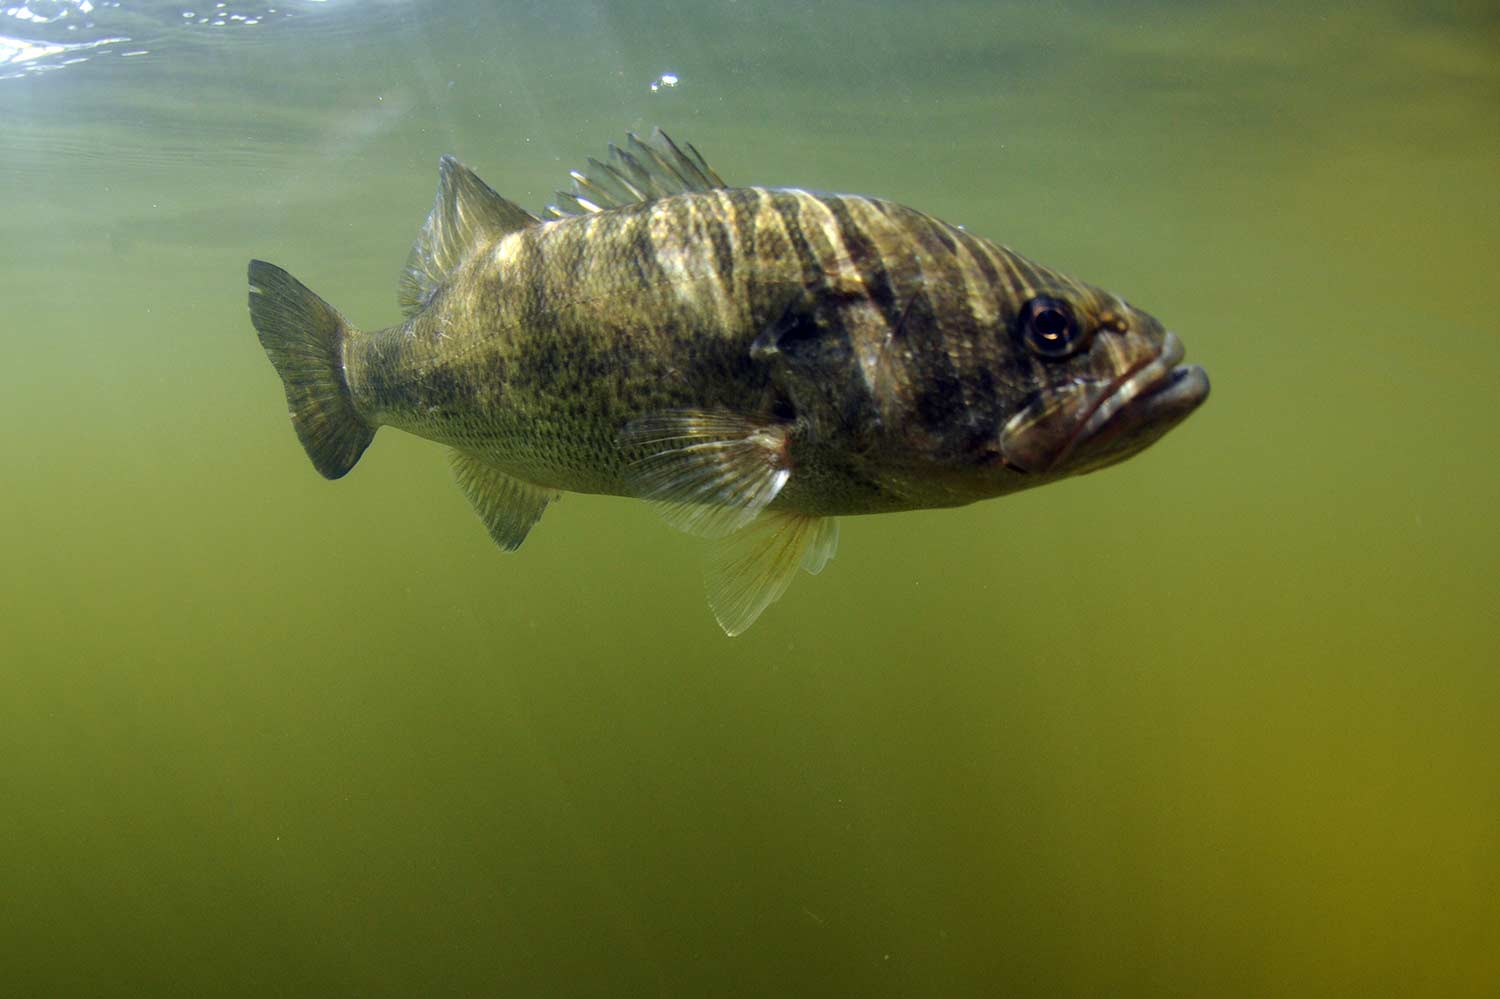 A largemouth bass swimming underwater.